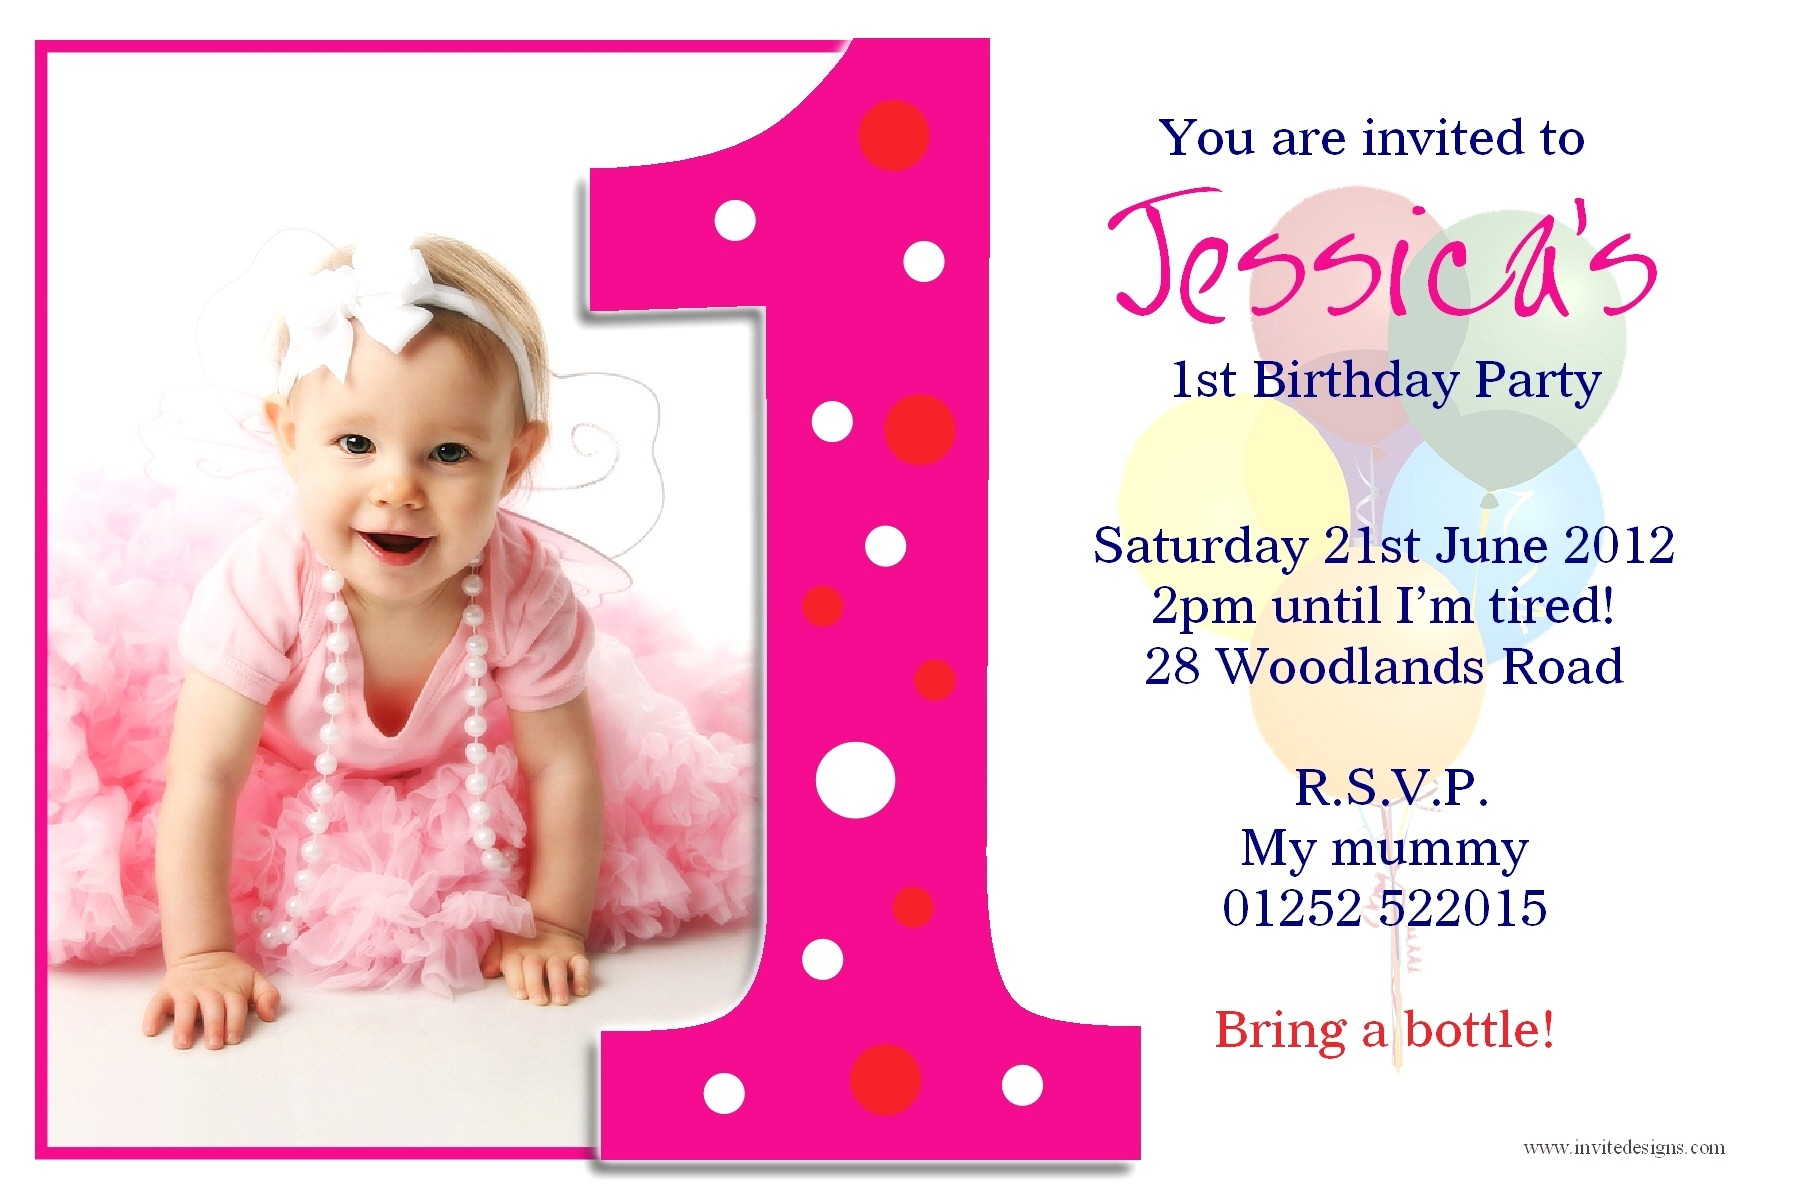 birthday card matter lovely birthday card invitation matter luxury first birthday card matter